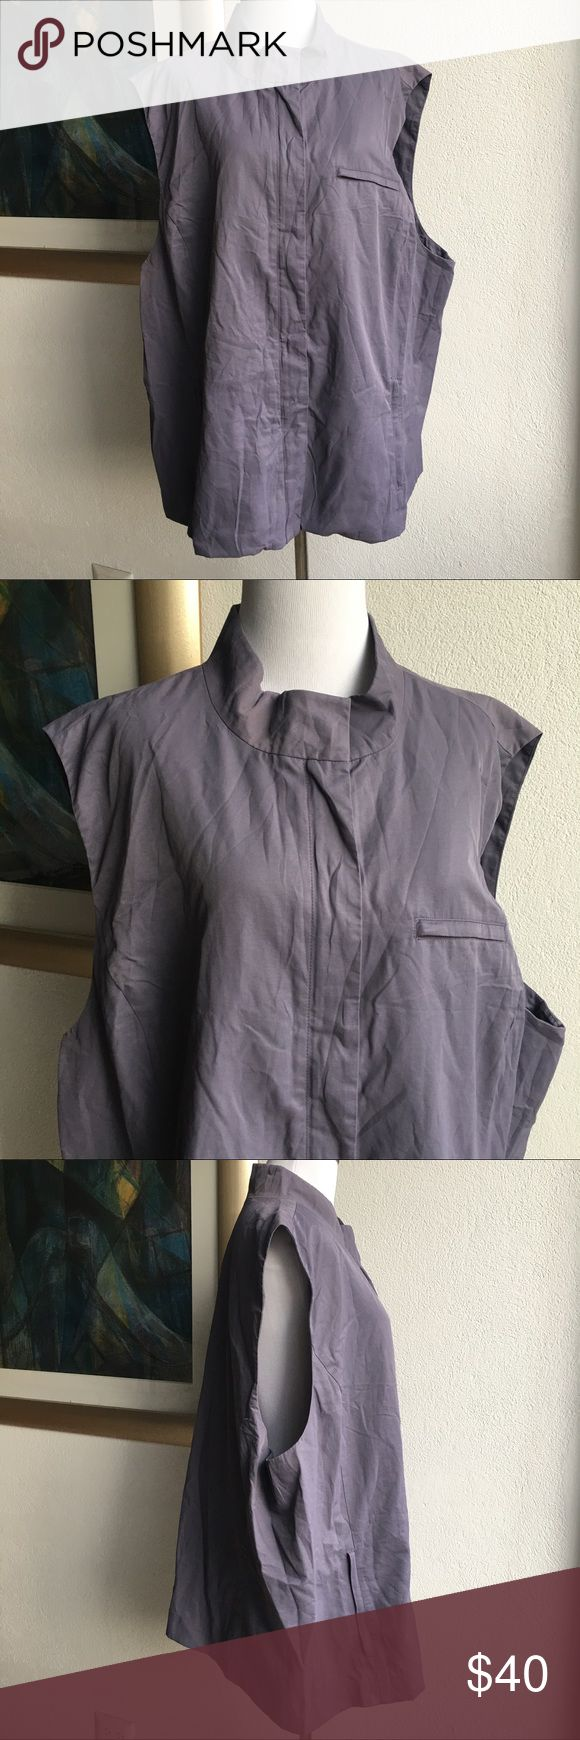 """Eileen Fisher Purple Vest size 3X Preowned Eileen Fisher Women's Purple Vest Size 3X Full Zip Up Outdoors. Lightly worn. Armpit to armpit is 28"""" inches. Collar to hem is 27"""" inches. Please look at pictures for better reference. Happy shopping!! Eileen Fisher Jackets & Coats Vests"""